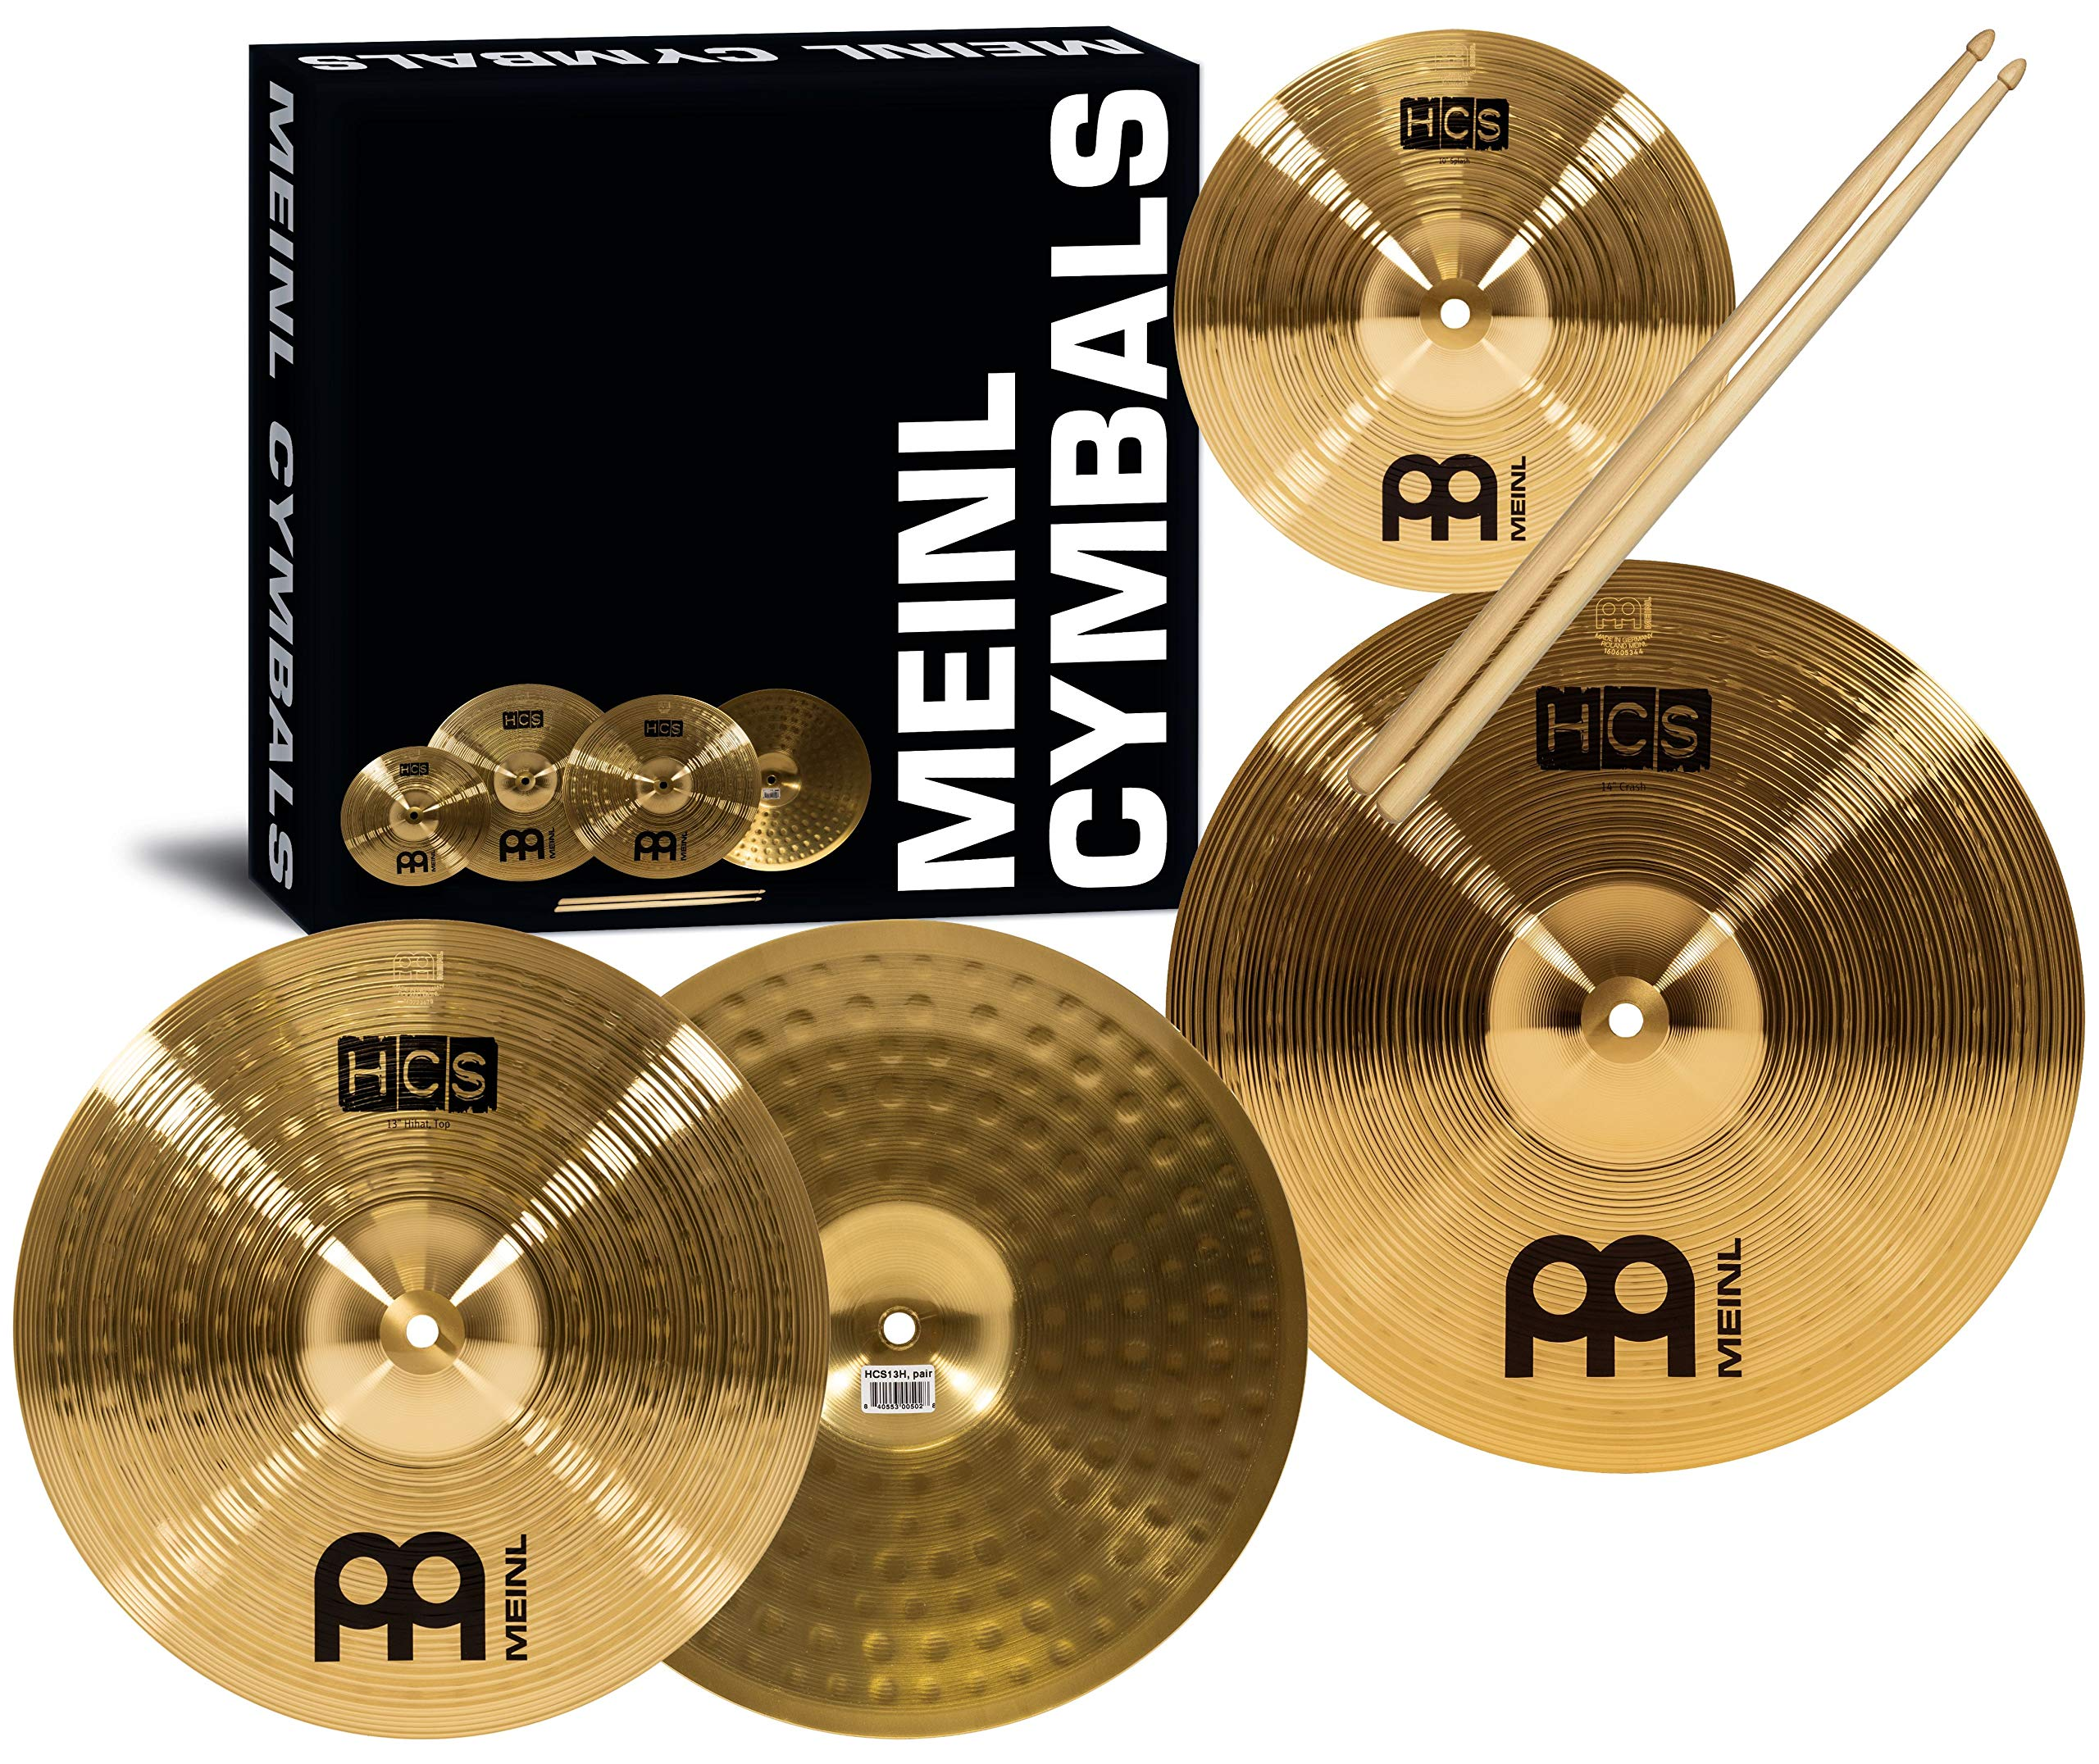 Meinl Cymbal Set Box Pack with 13'' Hihats, 14'' Crash, Plus Free 10'' Splash, Sticks, Lessons – HCS Traditional Brass – Made in Germany, 2-YEAR WARRANTY MultiColor HCS1314-10S